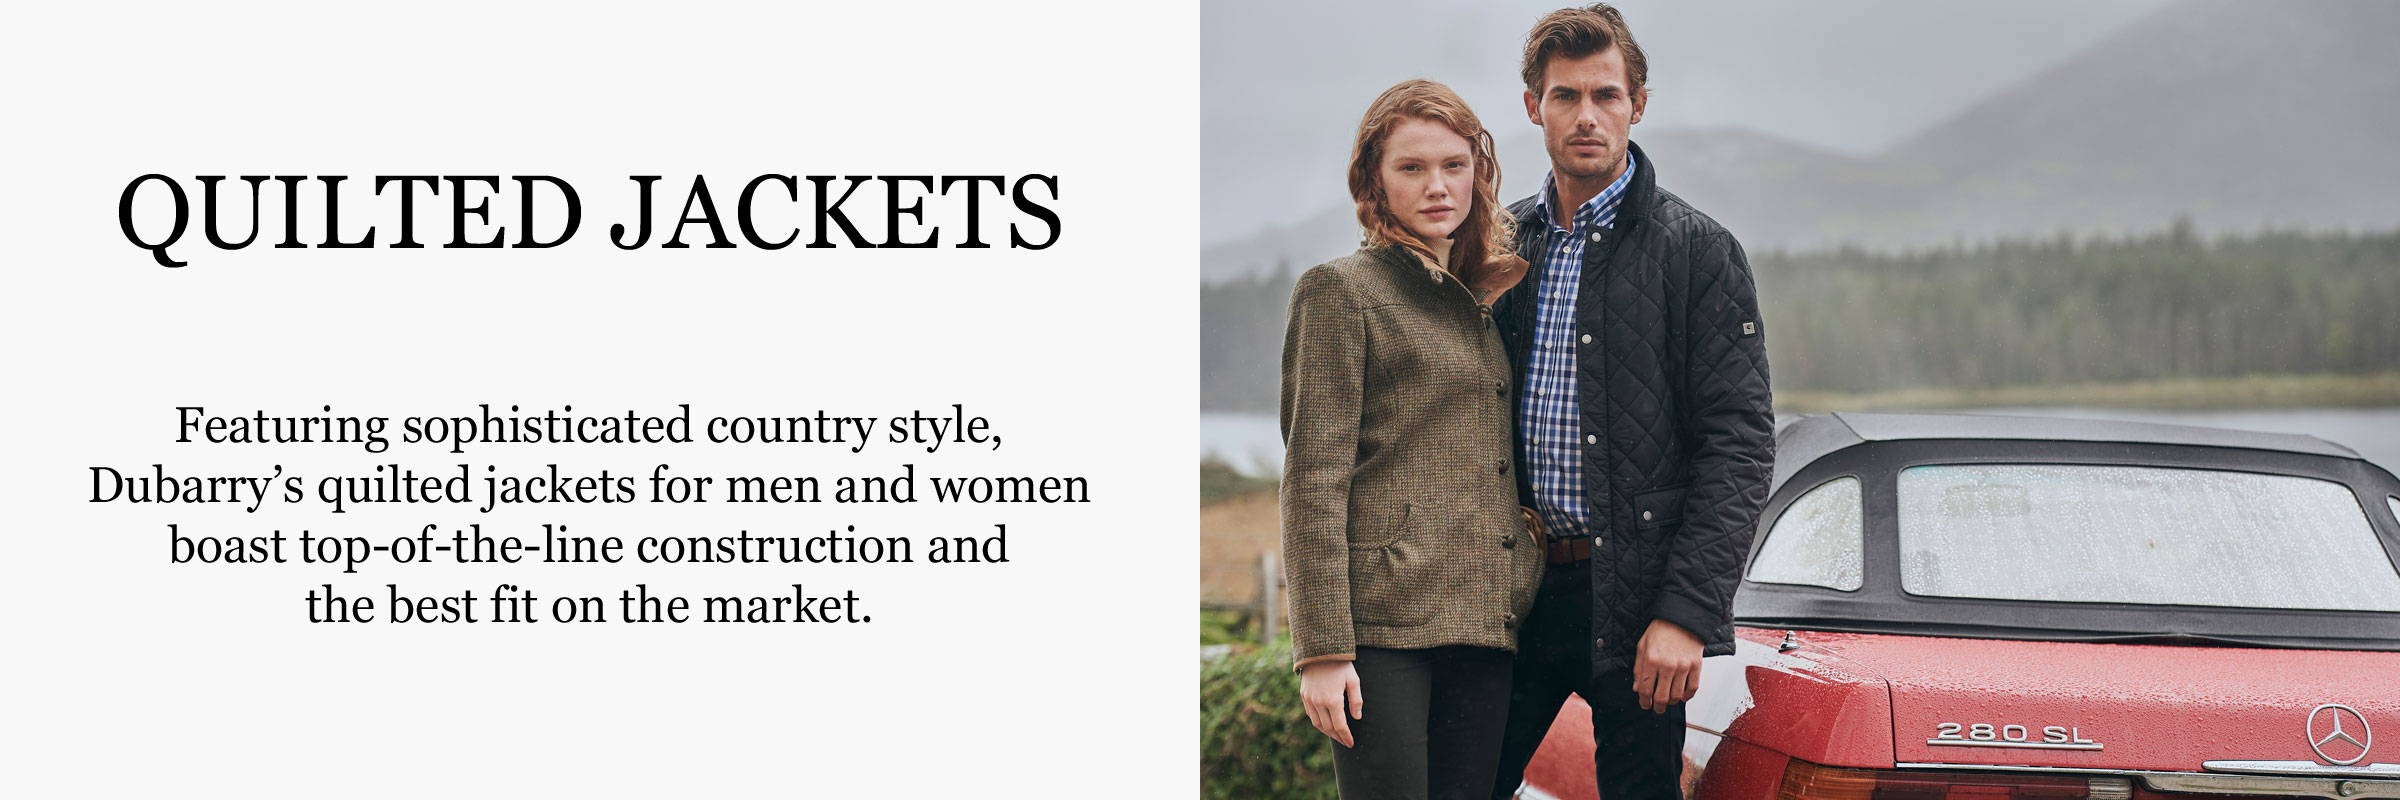 Dubarry Quilted Jackets